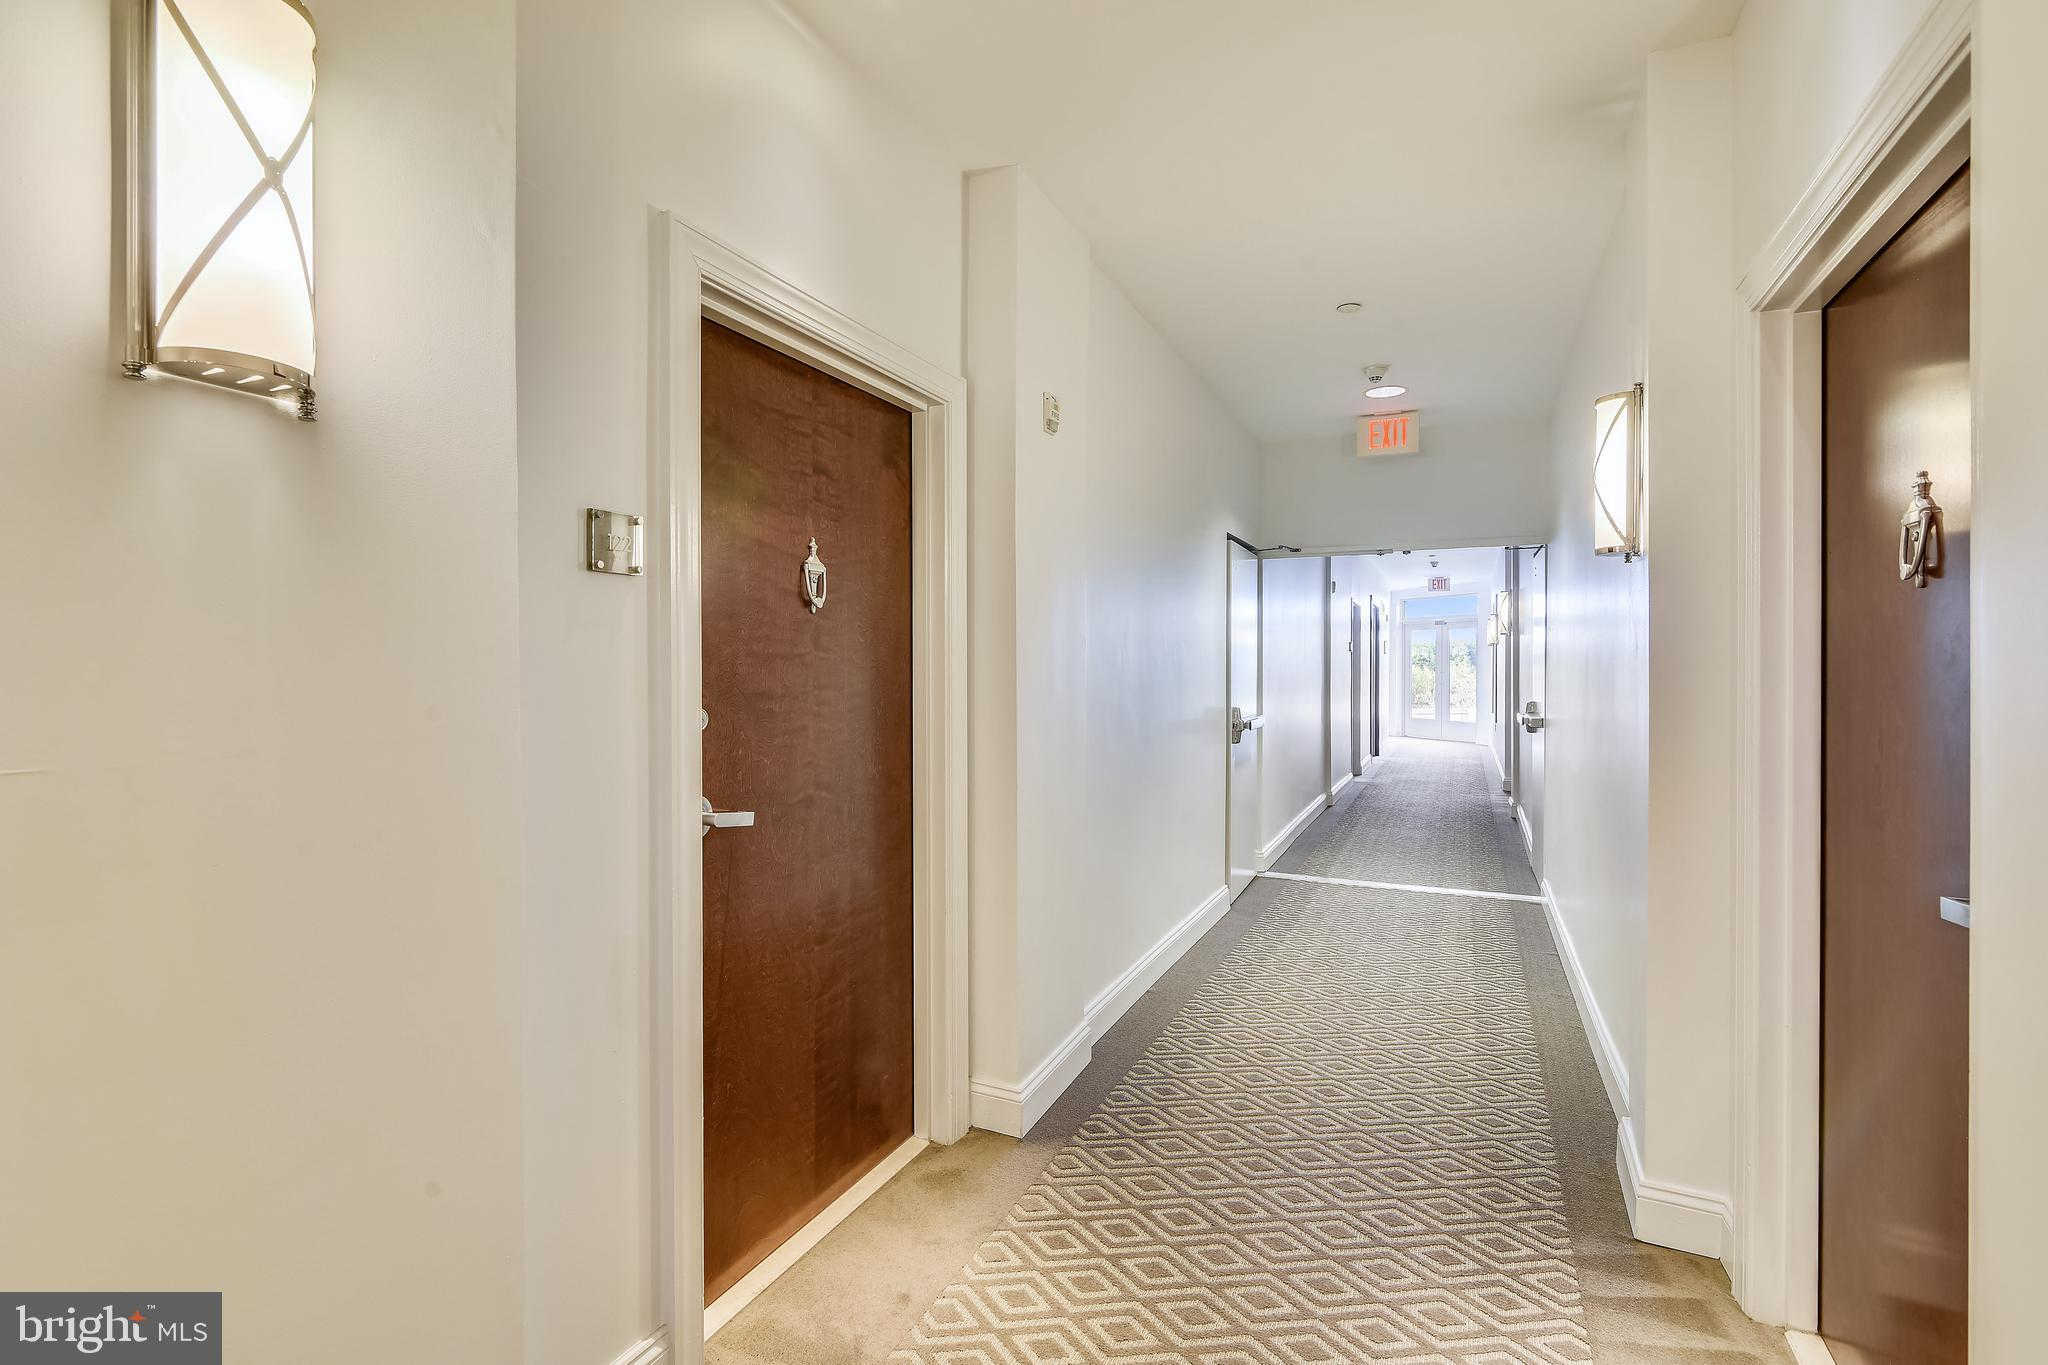 11770 Sunrise Valley Drive #122, Reston, VA 20191 now has a new price of $239,900!